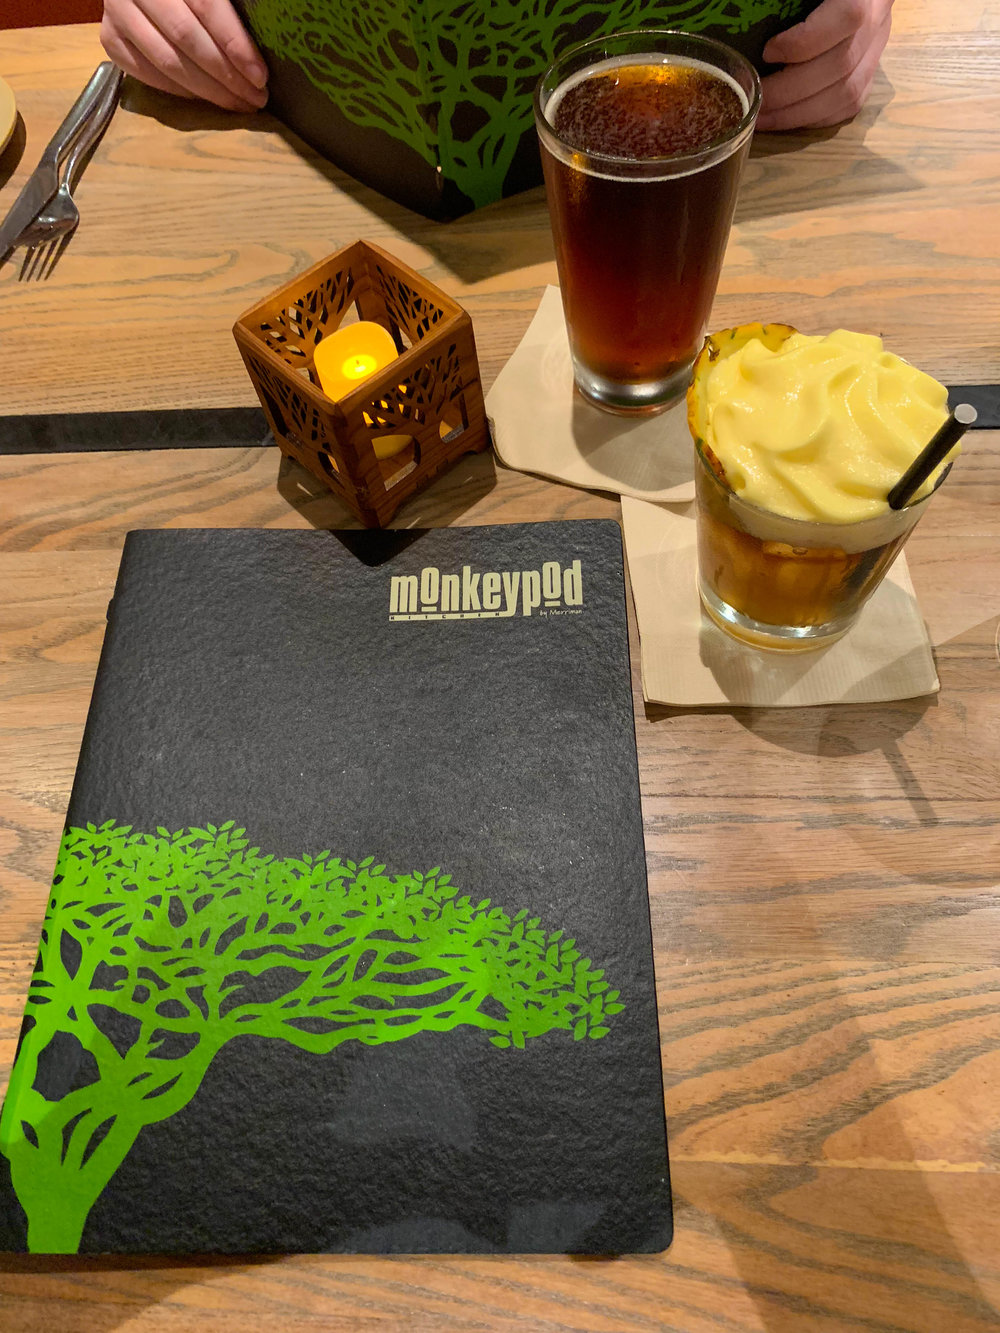 Maui Hawaii Monkeypod menu and drinks - Mai tai